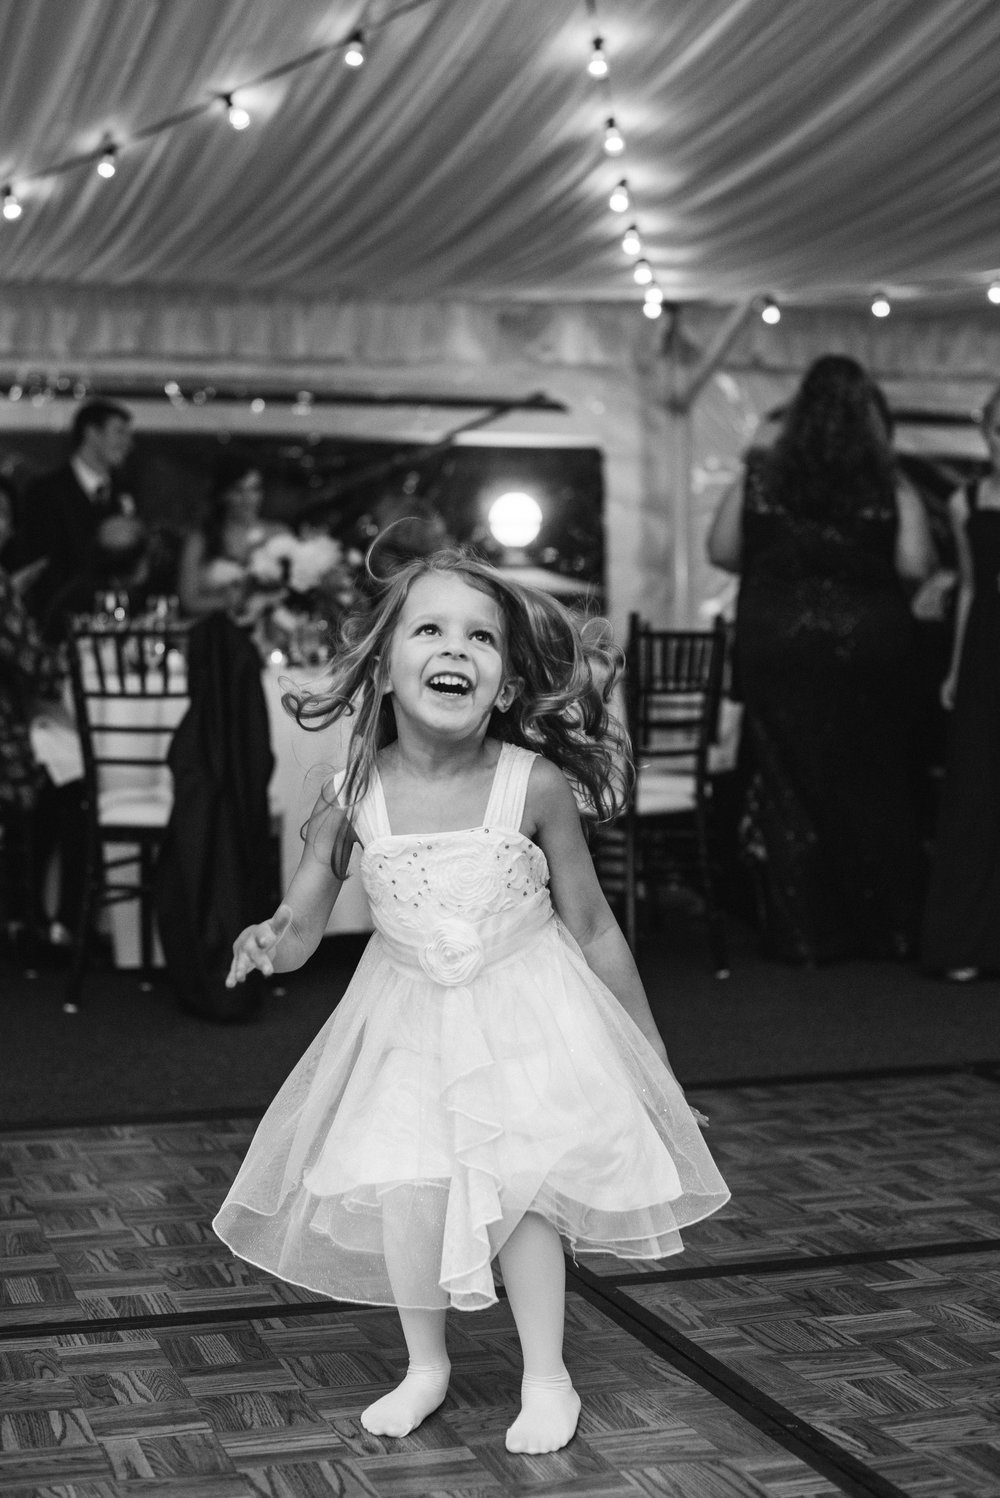 florwer-girl-dancing-sagamore-resort-lake-george-ny-wedding-ym-photography